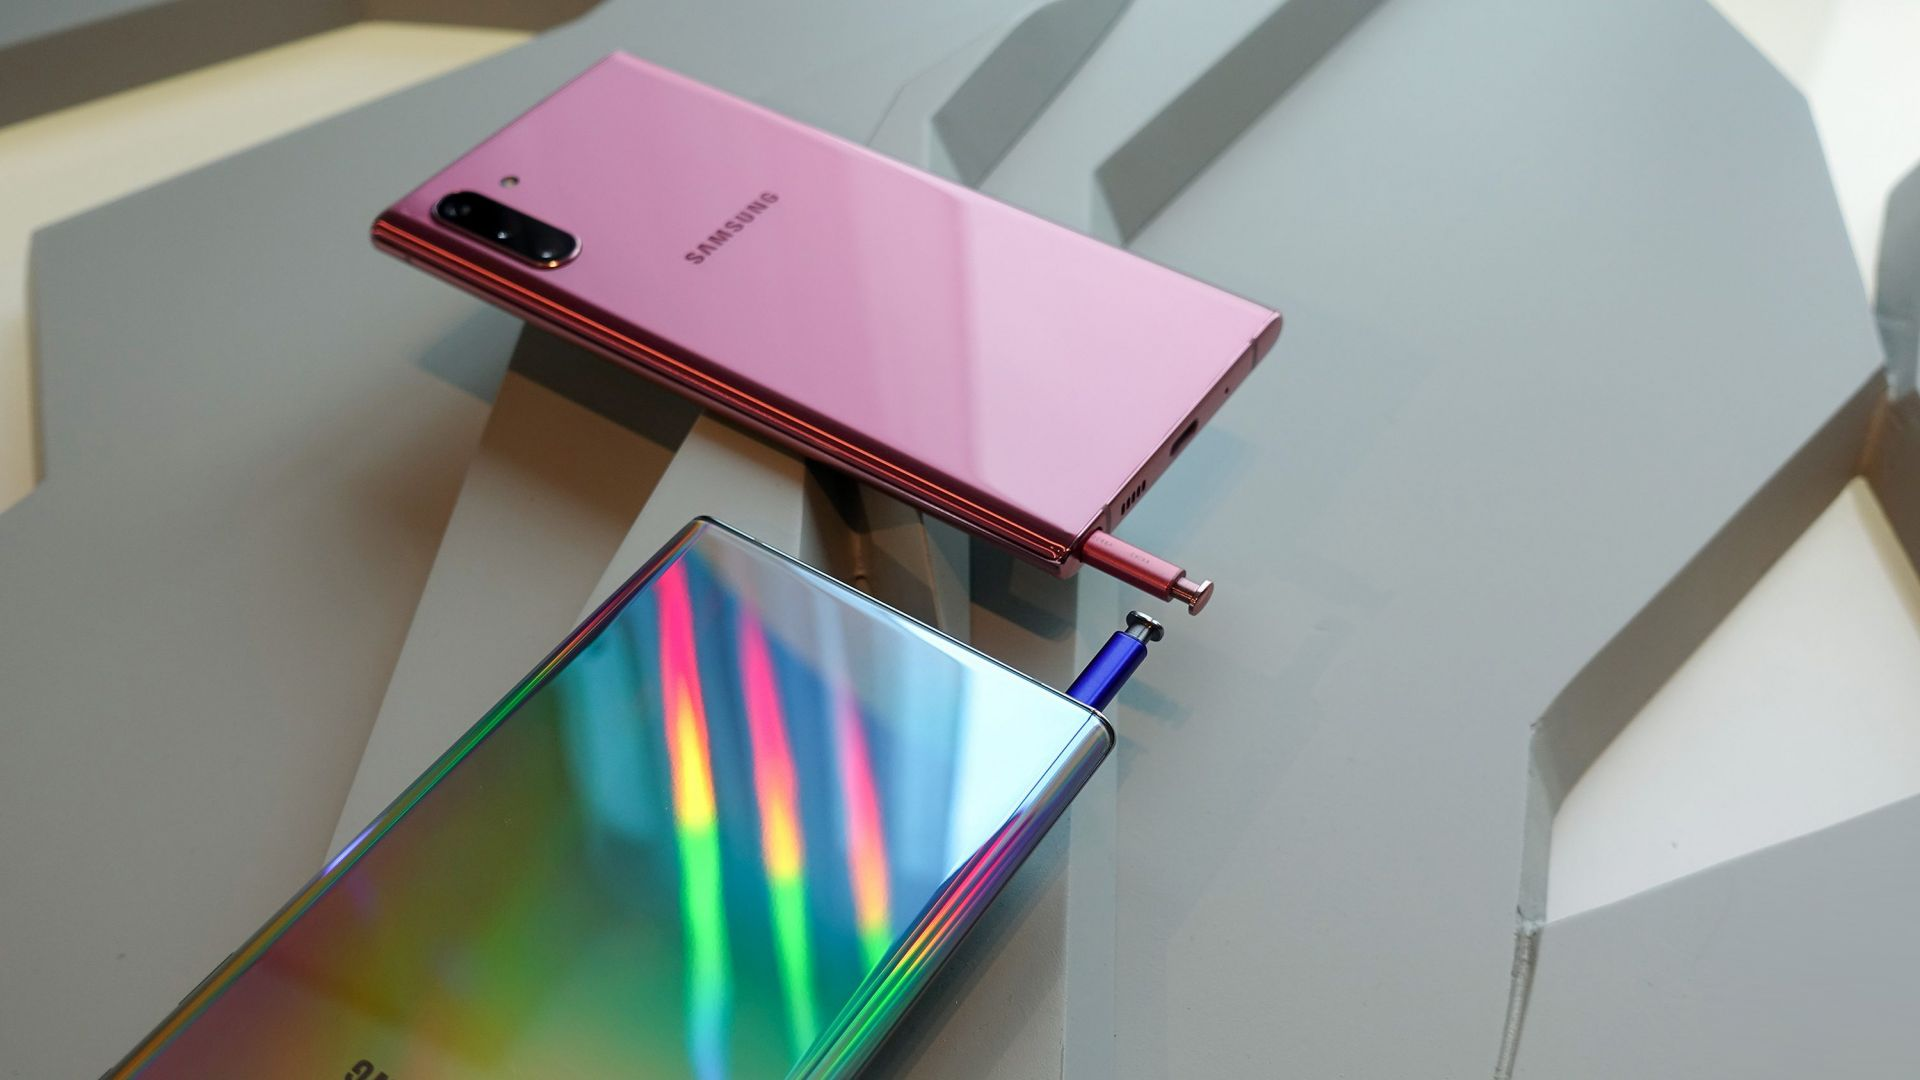 Samsung Galaxy Note 10 (horizontal)